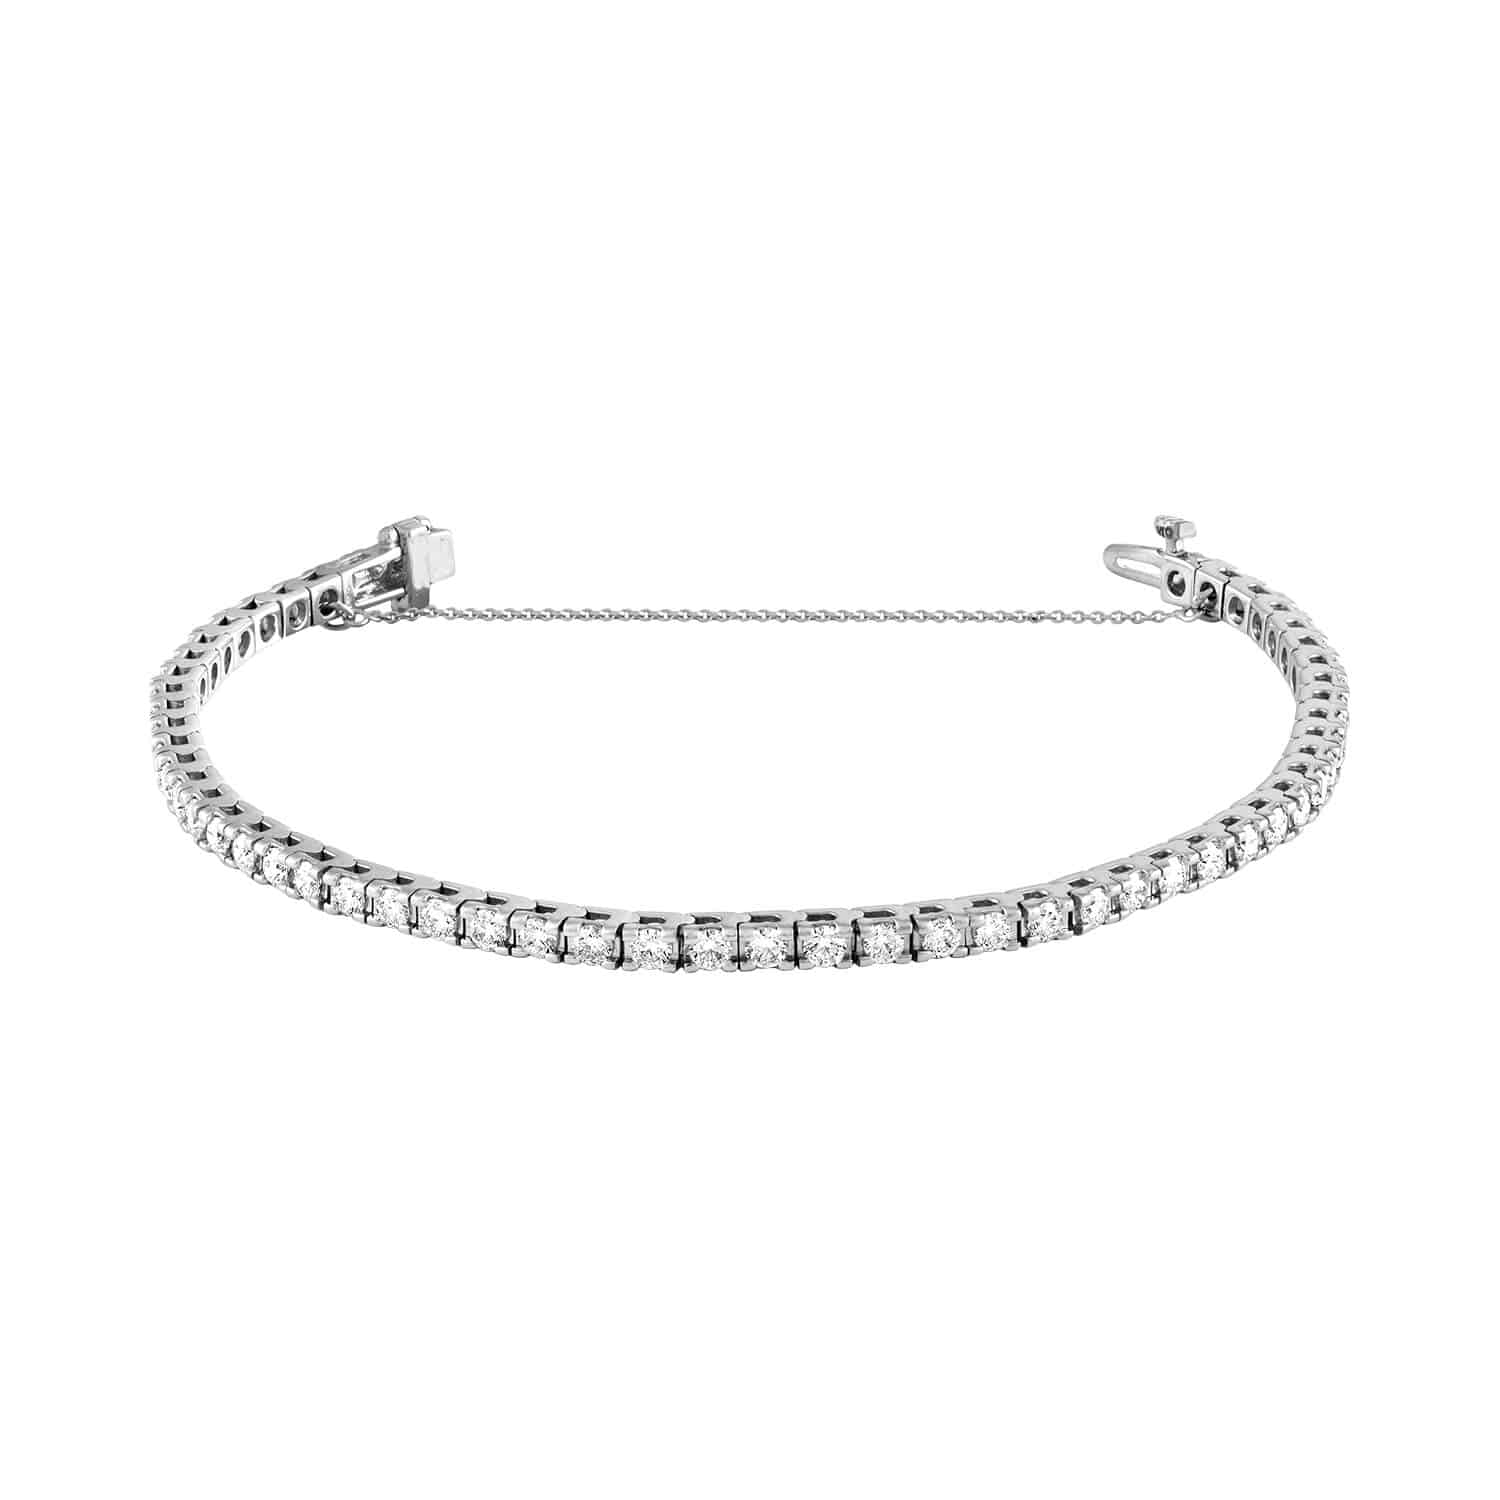 Jewelry & Watches Bridal & Wedding Party Jewelry 0.20 Tcw D Vs Round Cut 14k White Gold Gift New Good Diamond Bangle Bracelet